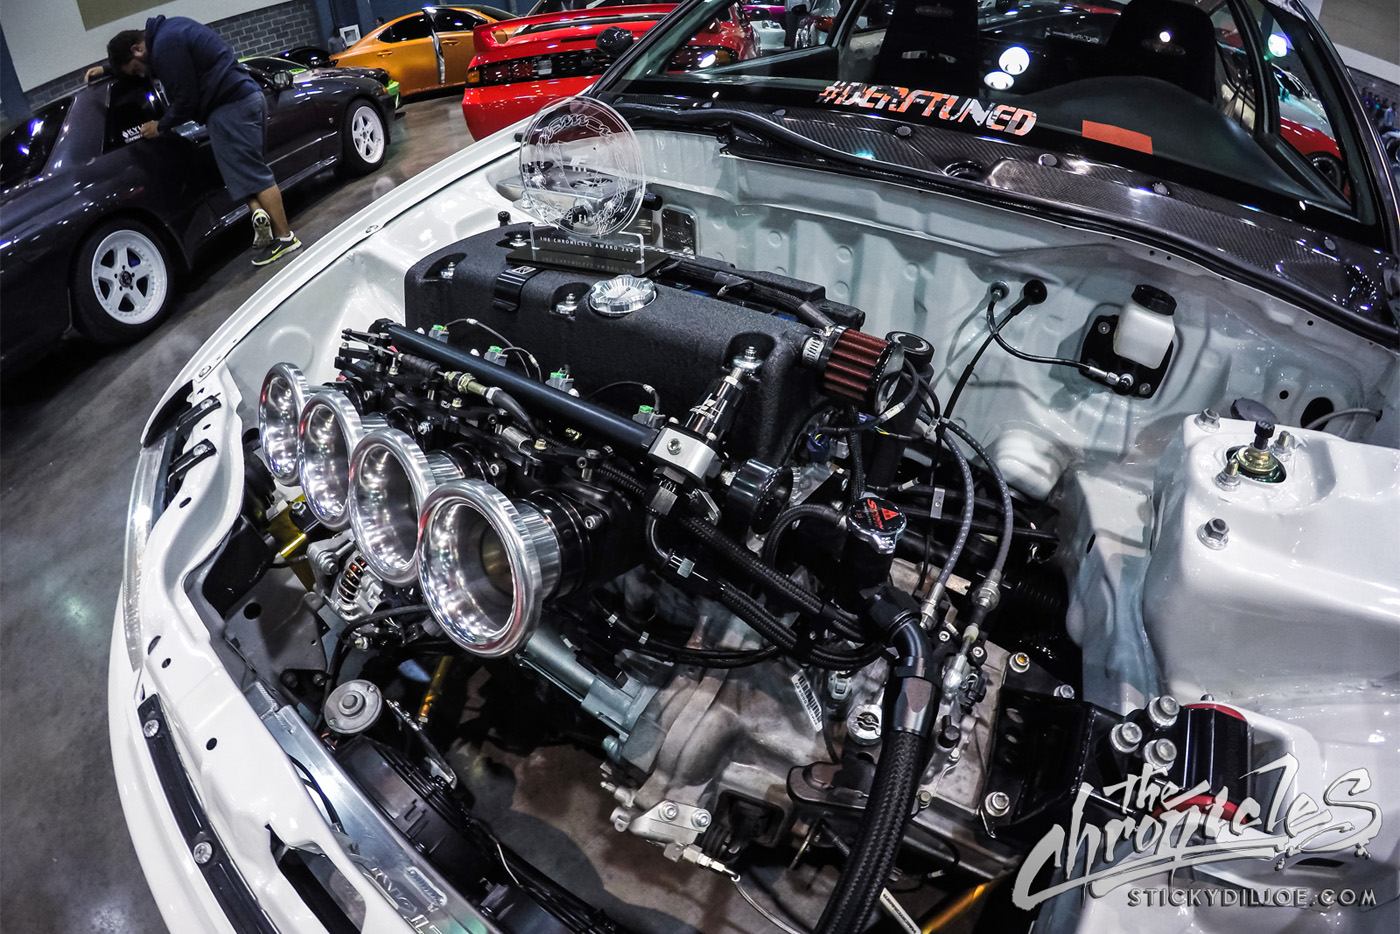 Wekfest Florida 2015 Coverage…Part 3 of 3…